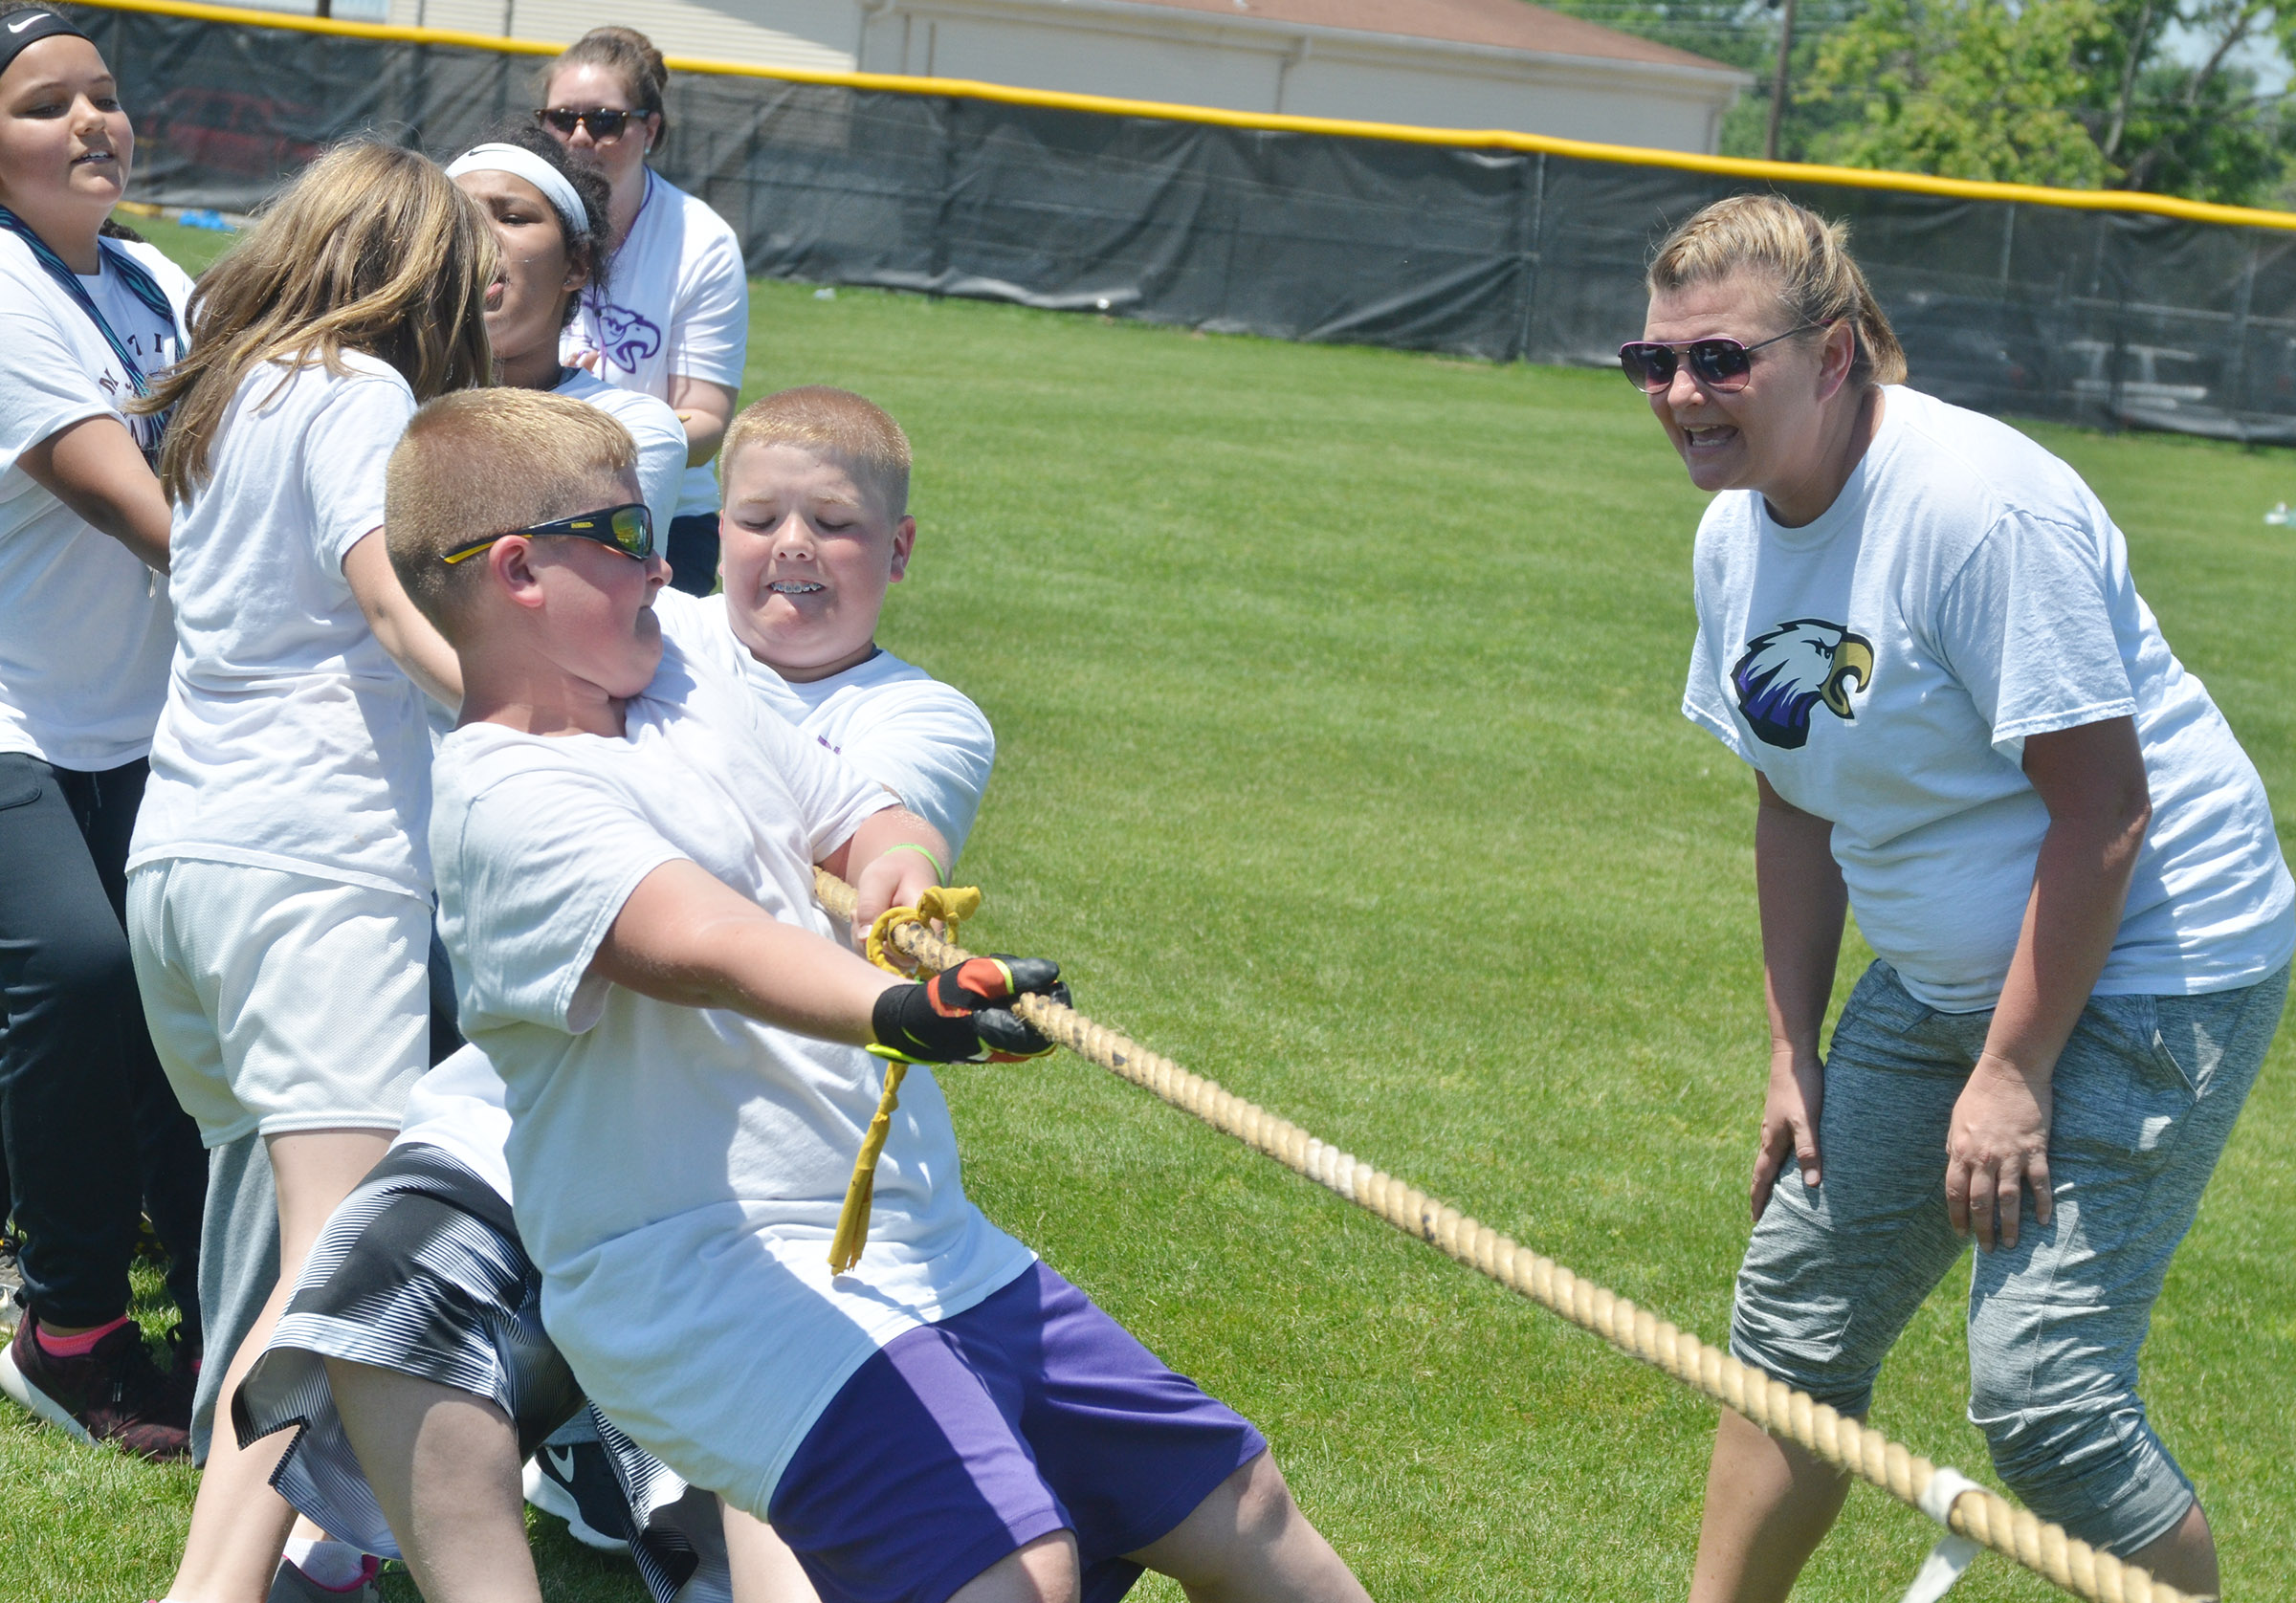 CMS fifth-grade teacher Tammy Hash cheers for her students as they compete in tug of war.